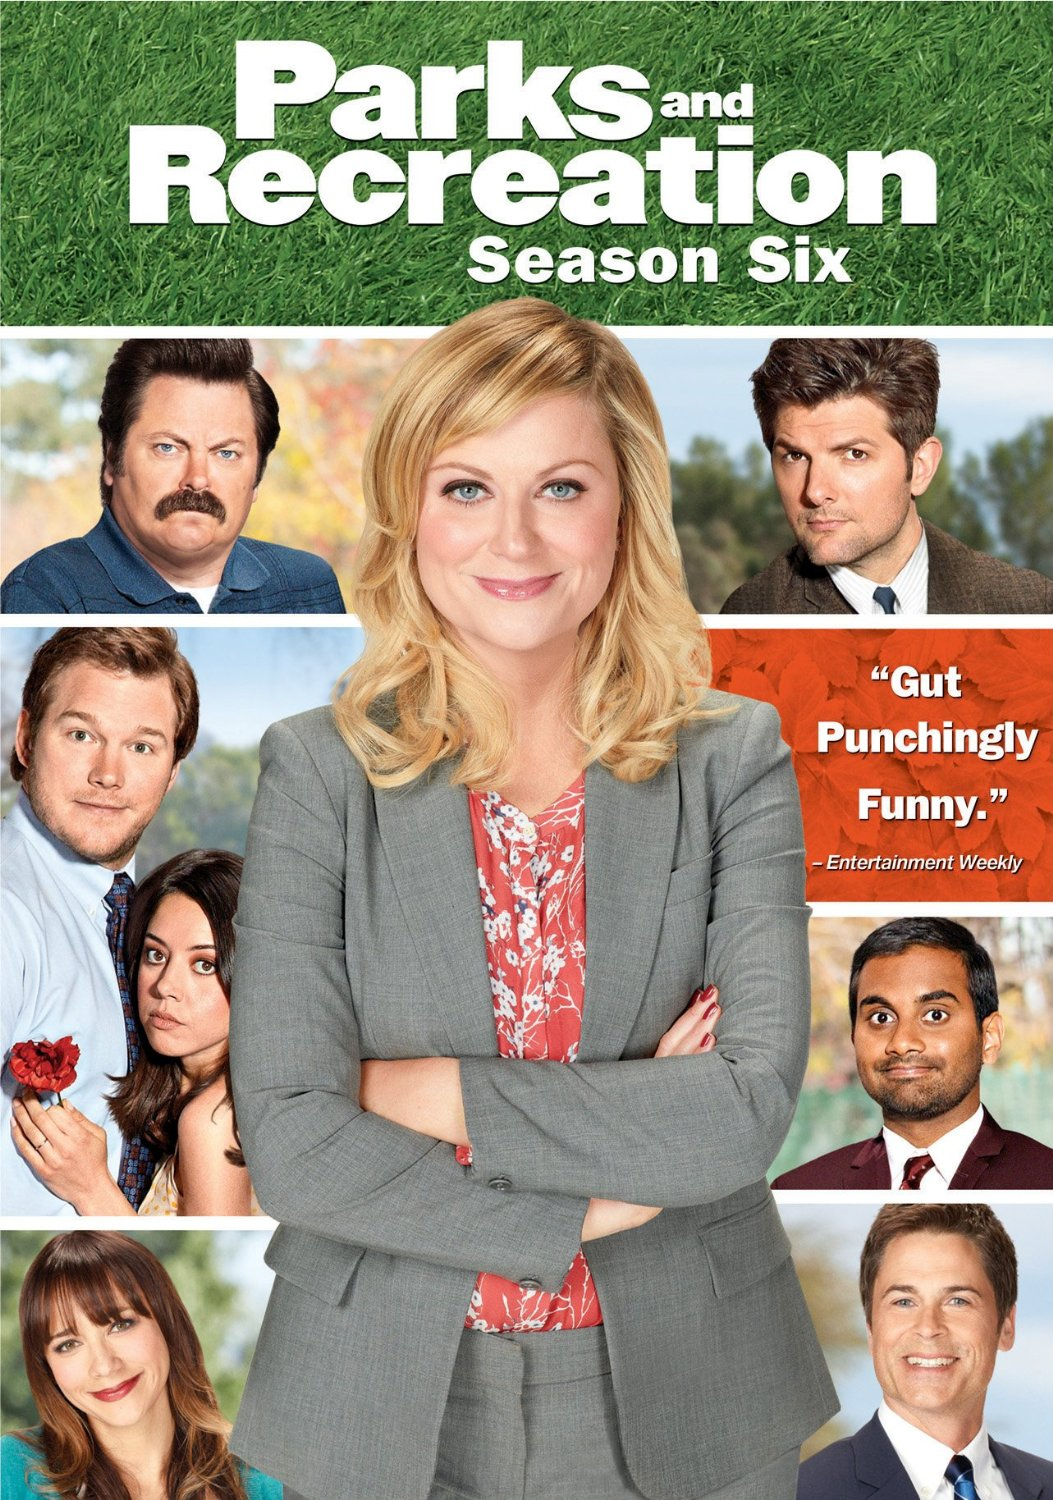 PARKS AND RECREATION SEASON 6 DVD